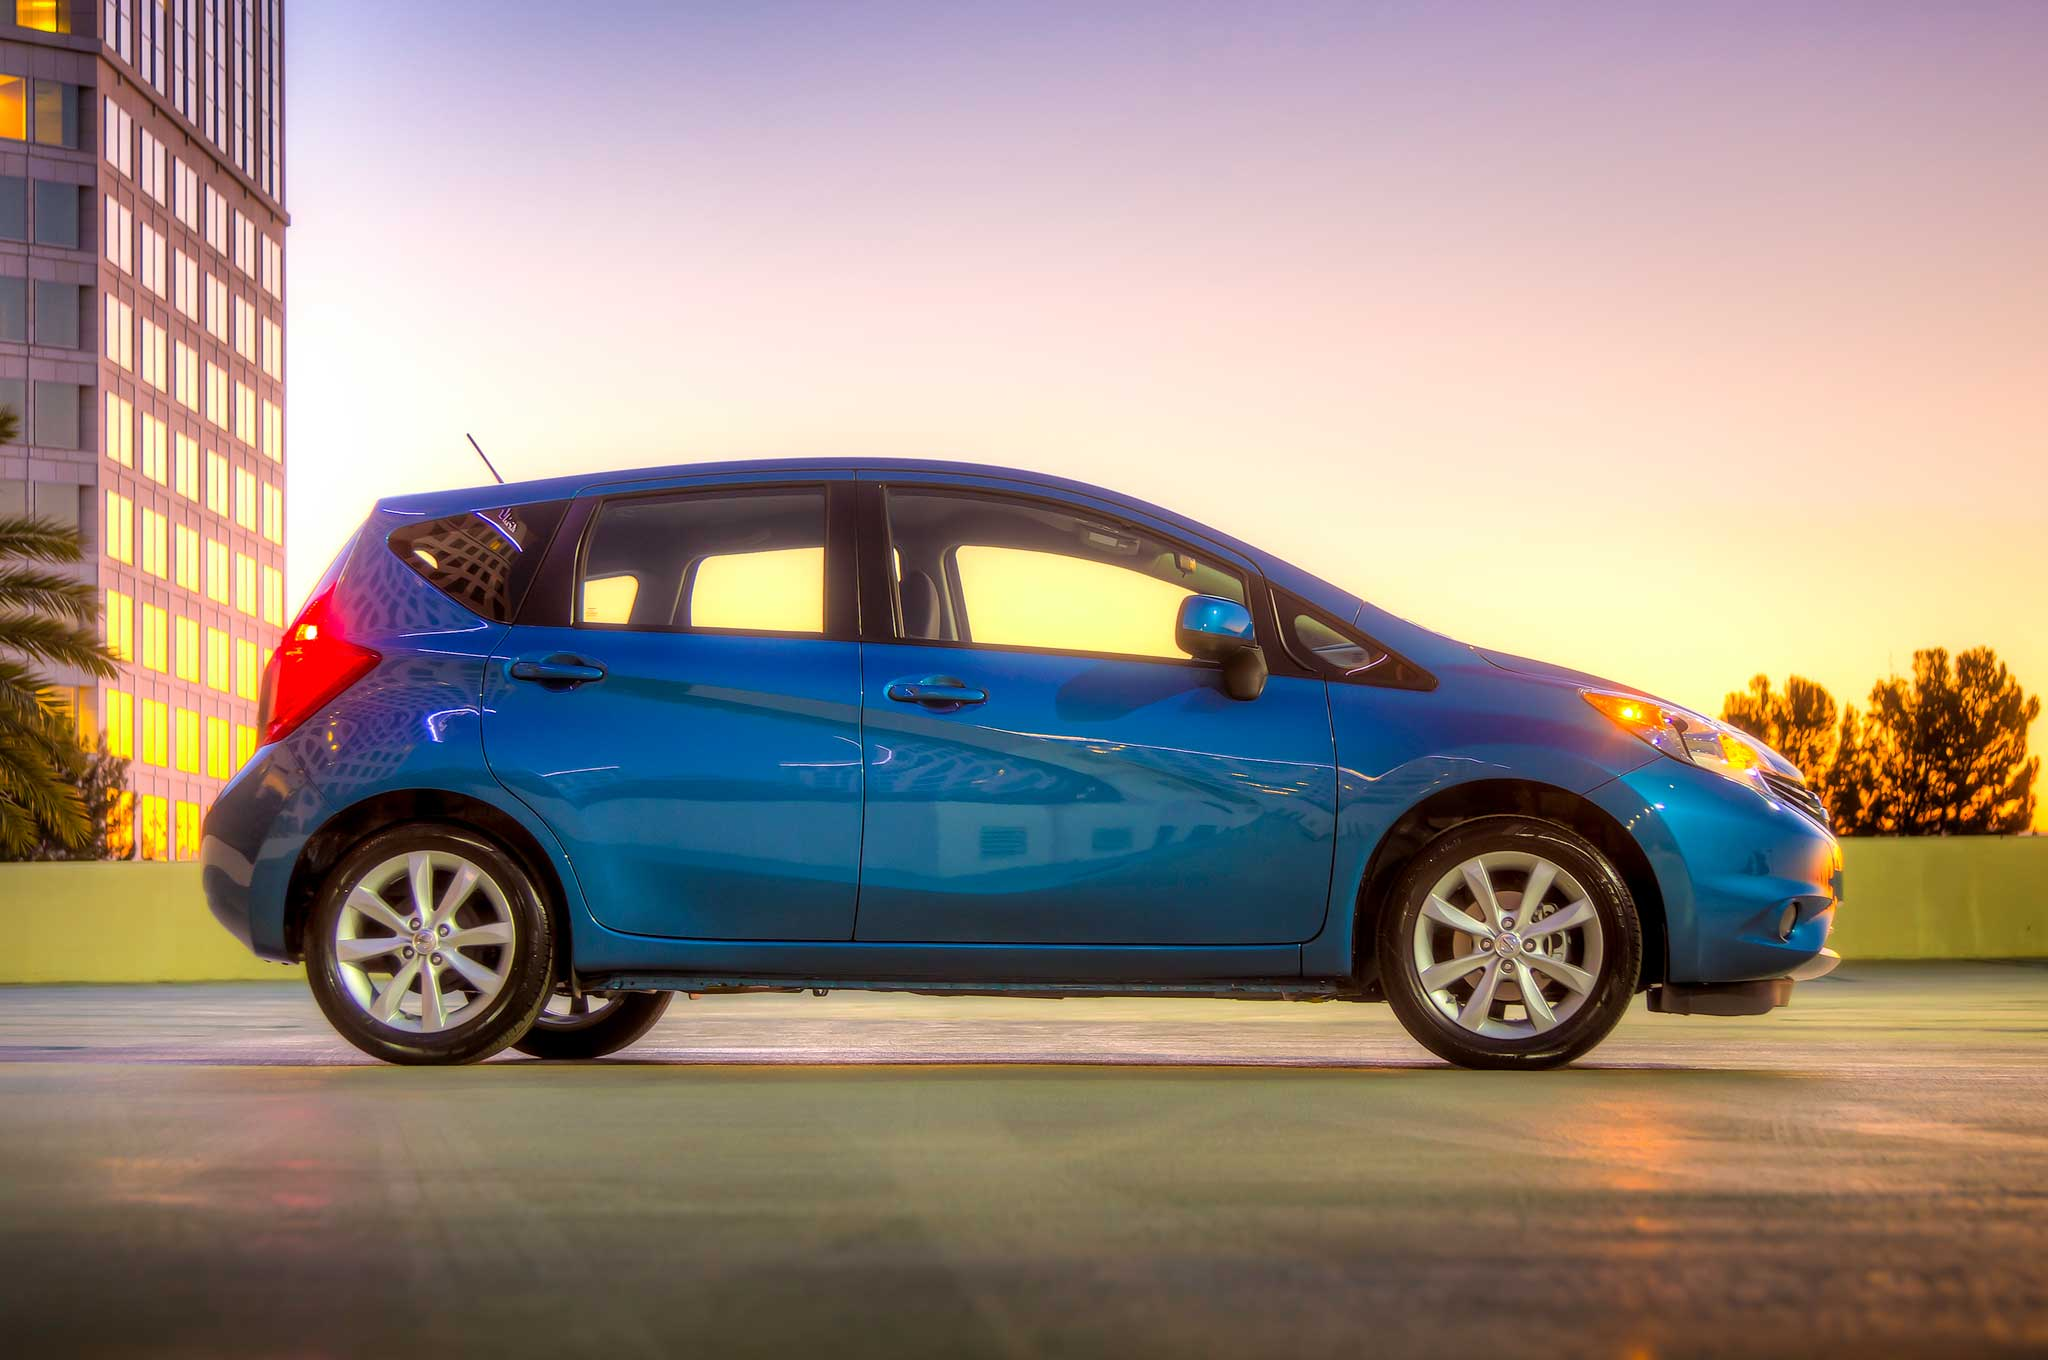 2014 Nissan Versa Note Priced From 14780